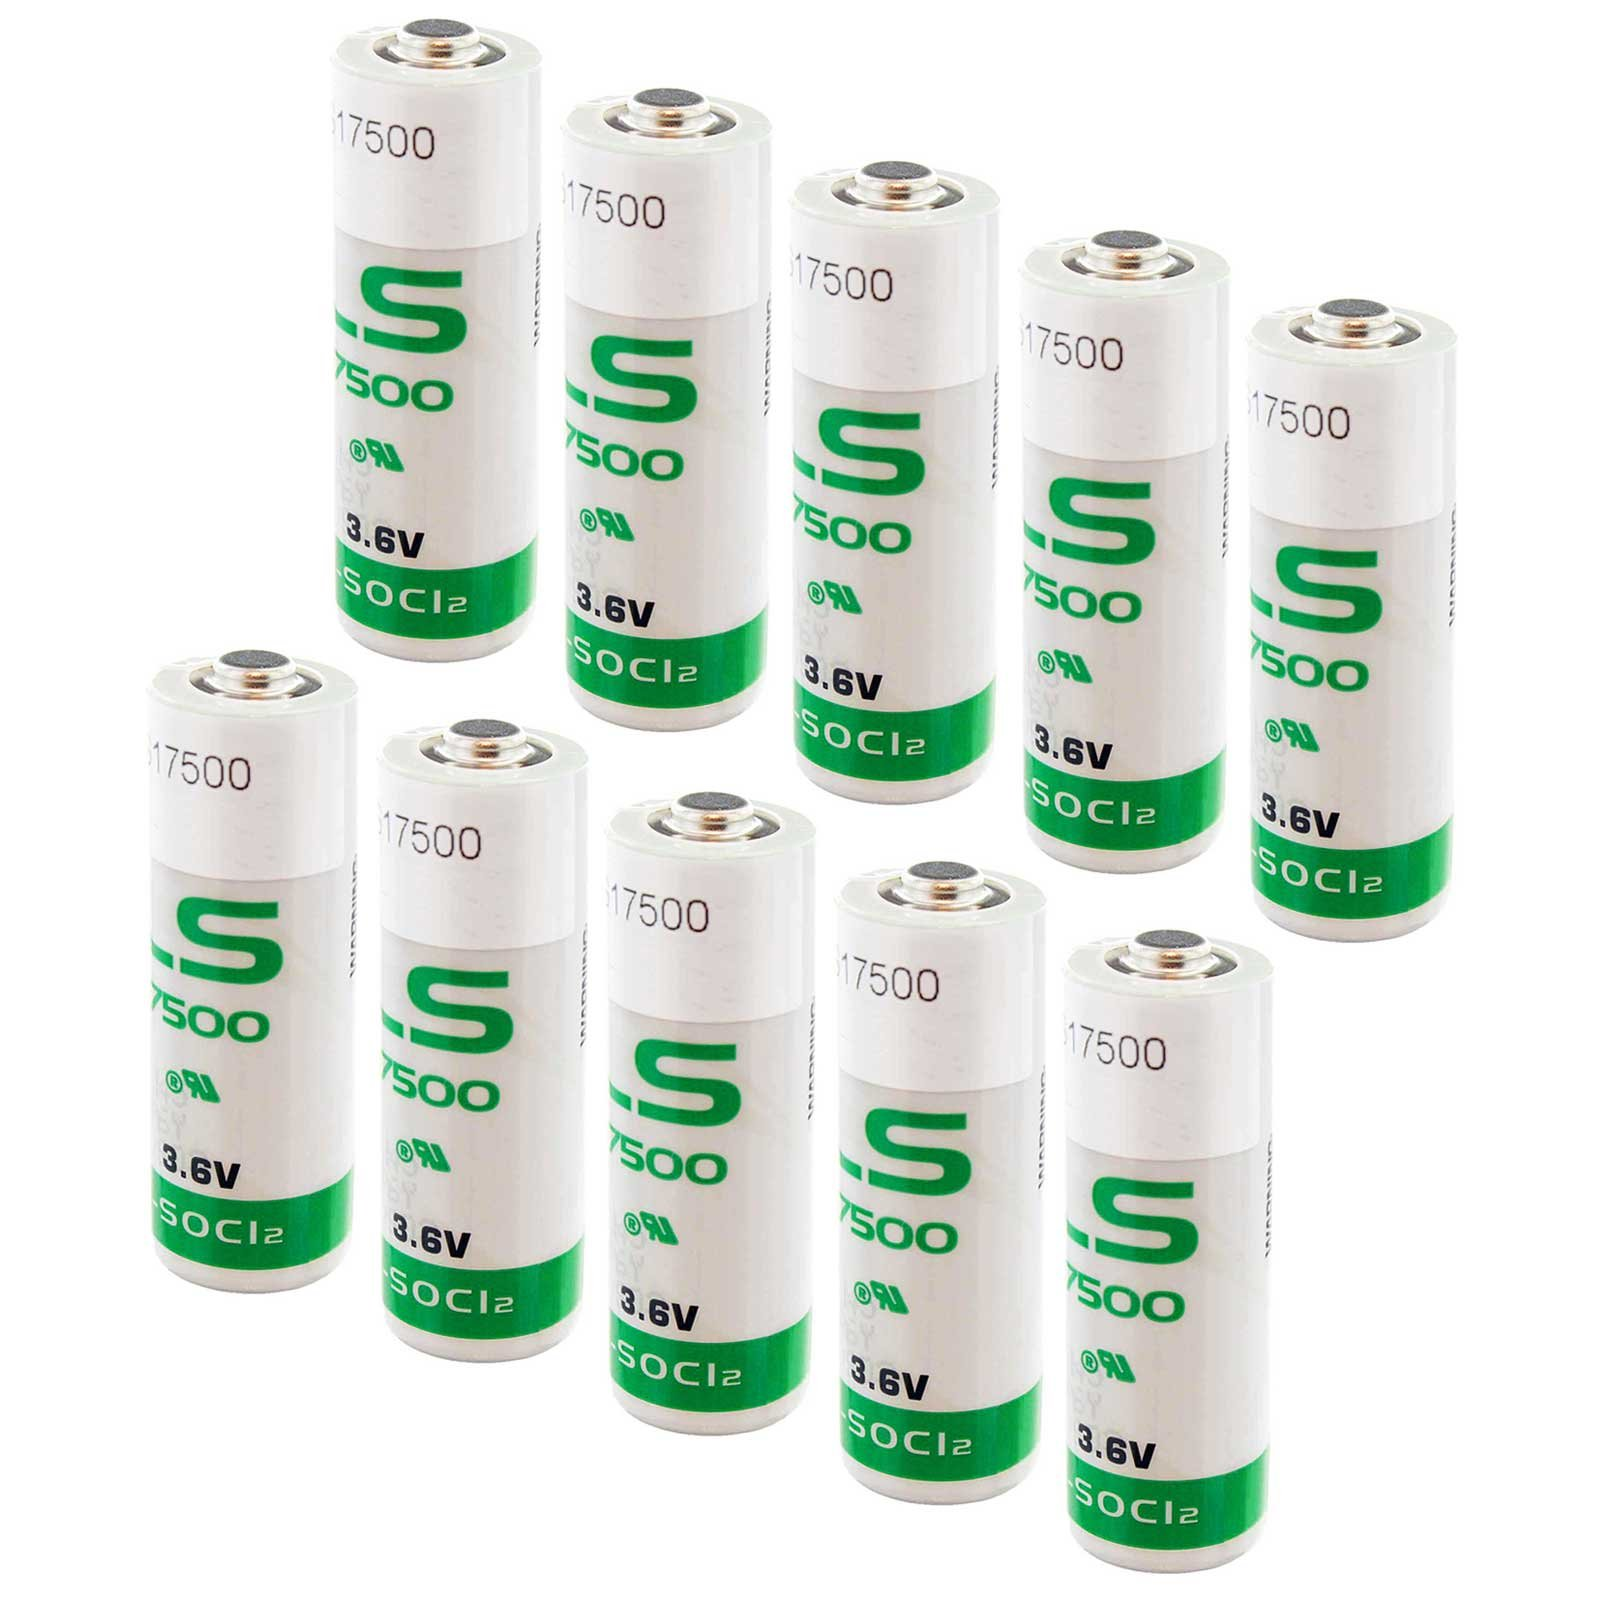 10x SAFT LS17500 Size A 3.6V 3600mAh Primary Lithium Battery for Maxell and More by Exell Battery (Image #1)